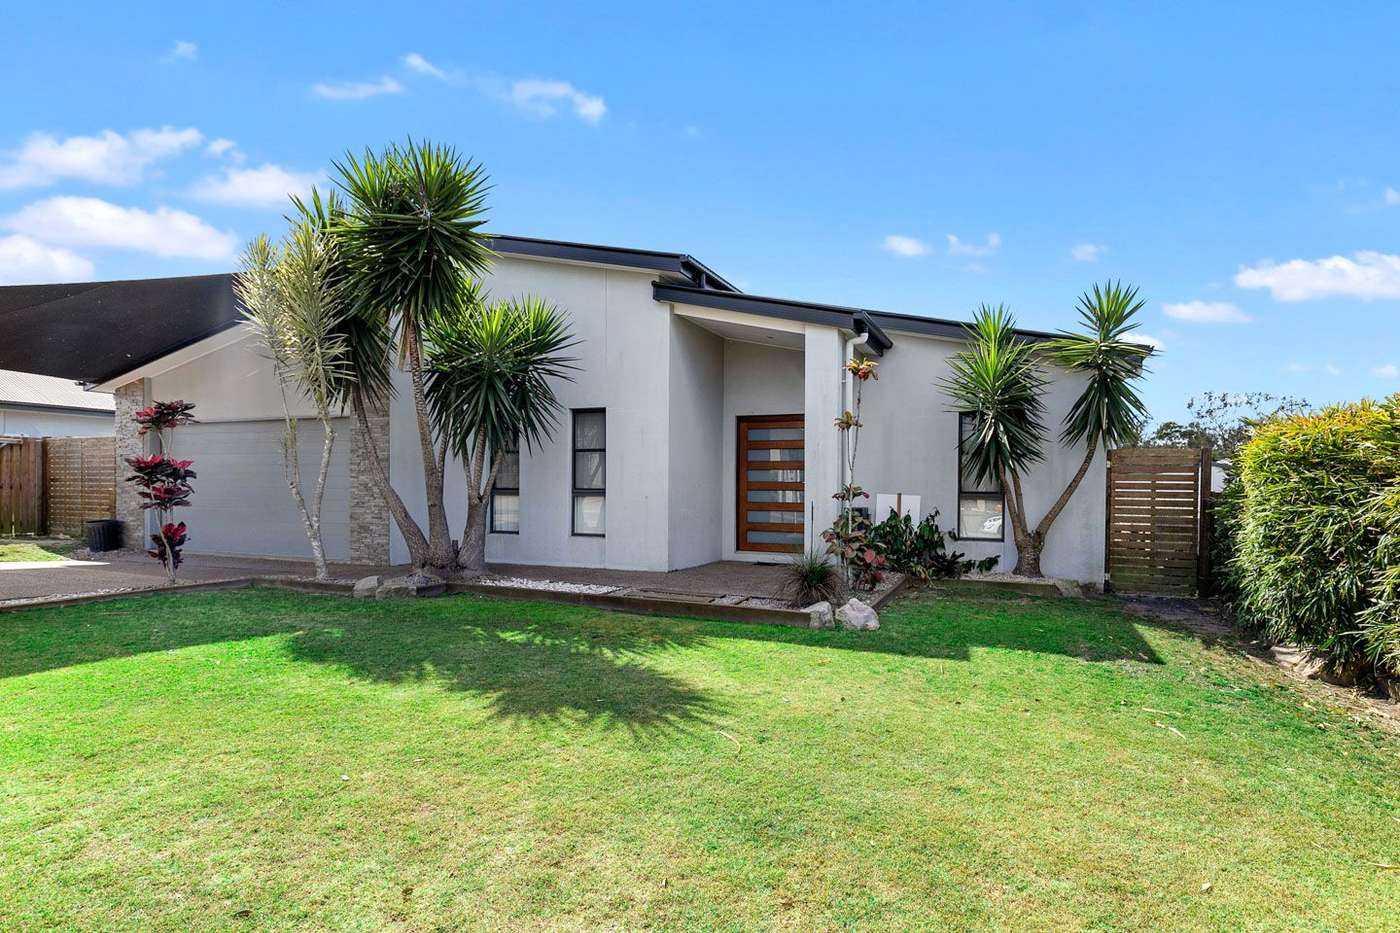 Main view of Homely house listing, 5 Bay Park Road, Wondunna, QLD 4655